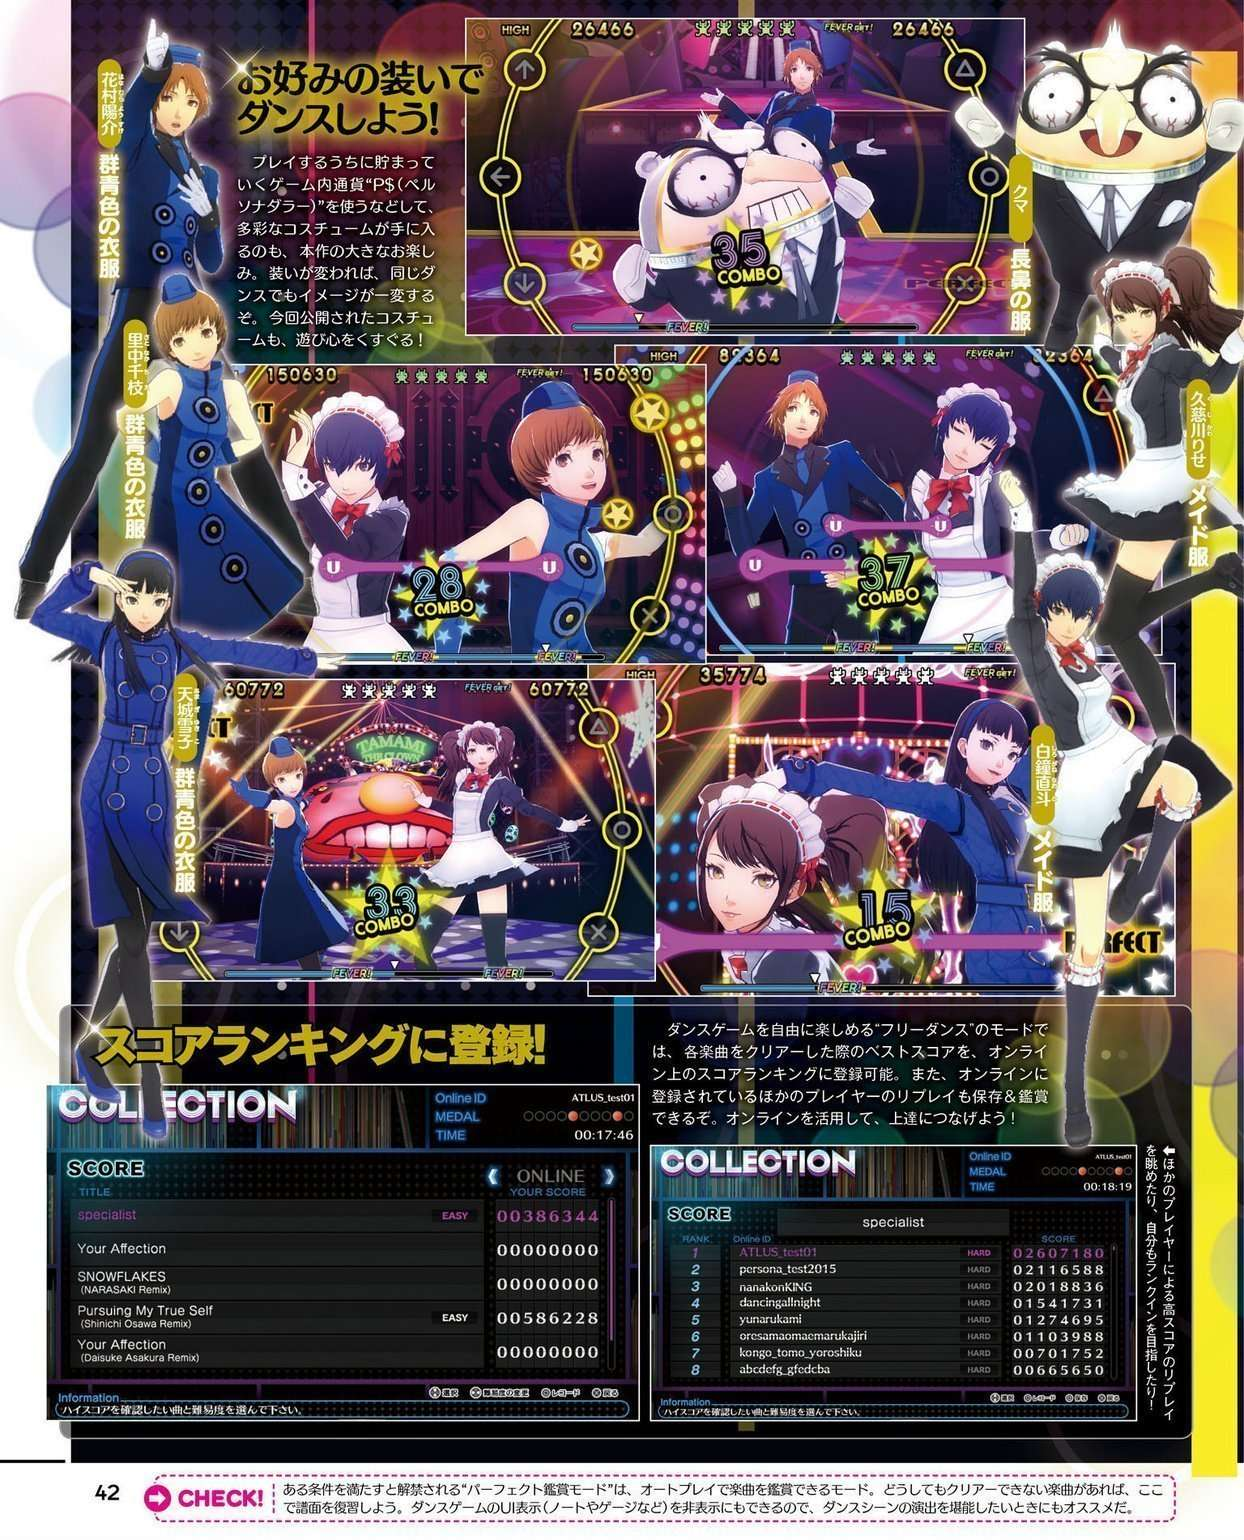 Velvet Room costumes and online leaderboards in P4D from Famitsu scans.